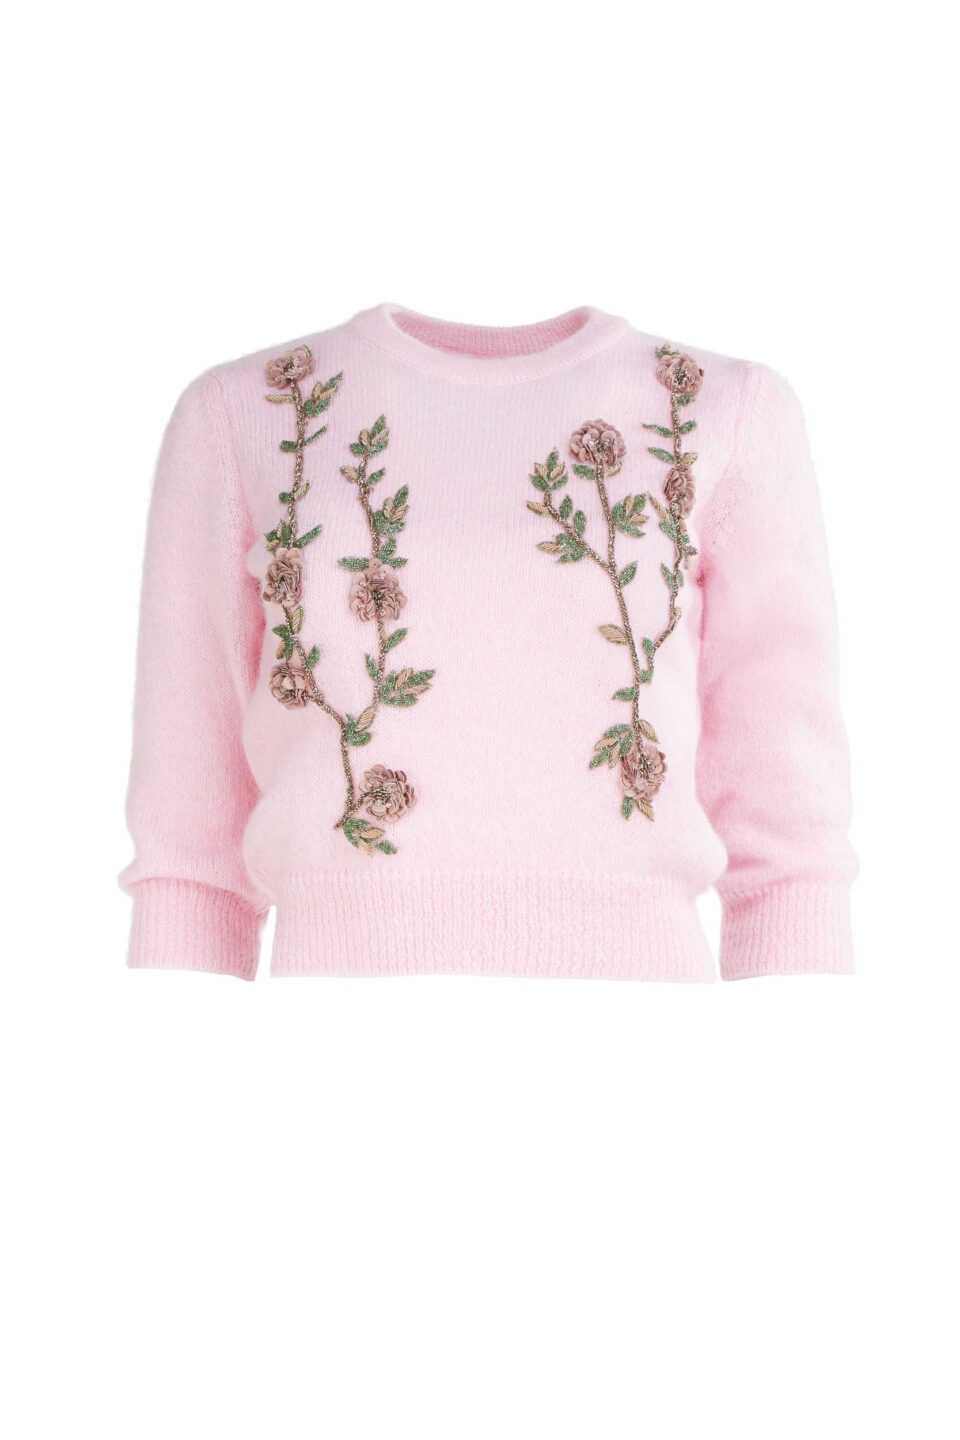 Olivia FW2183 Pink Sustainable Mohair Knit Sweater with Beaded Flower Appliques